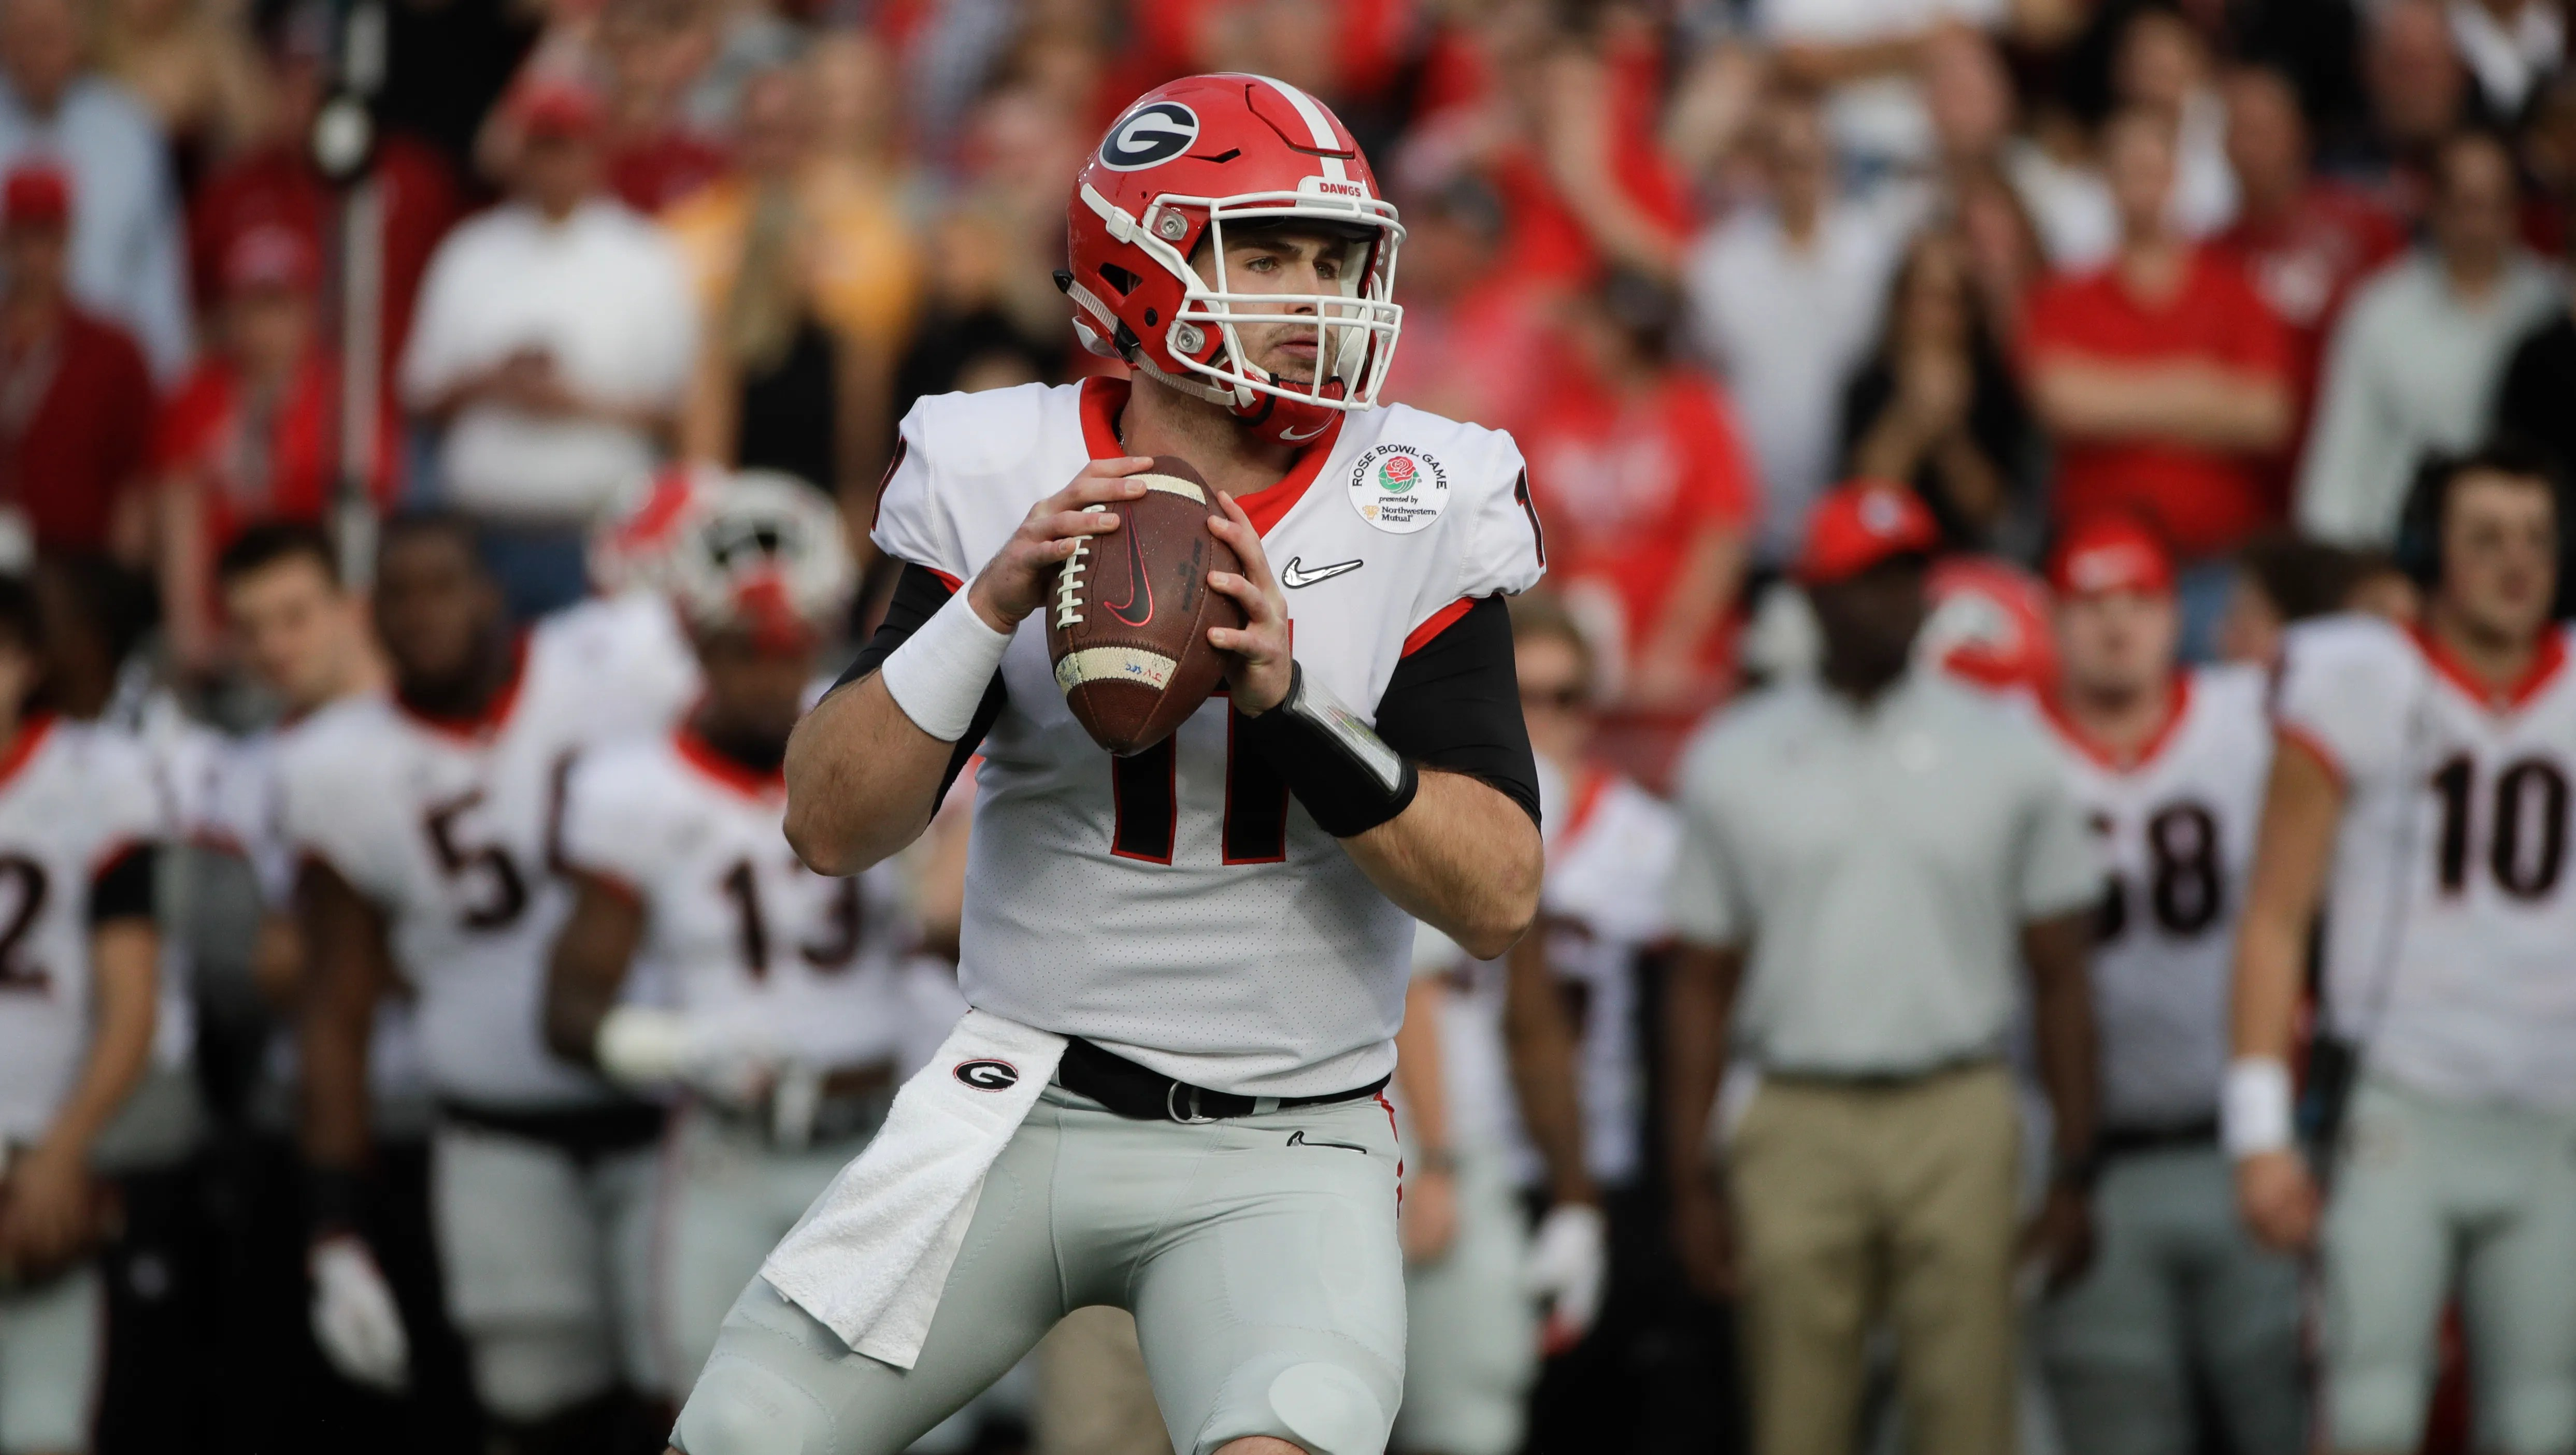 College Football Bowl Schedule And Results 2017 18